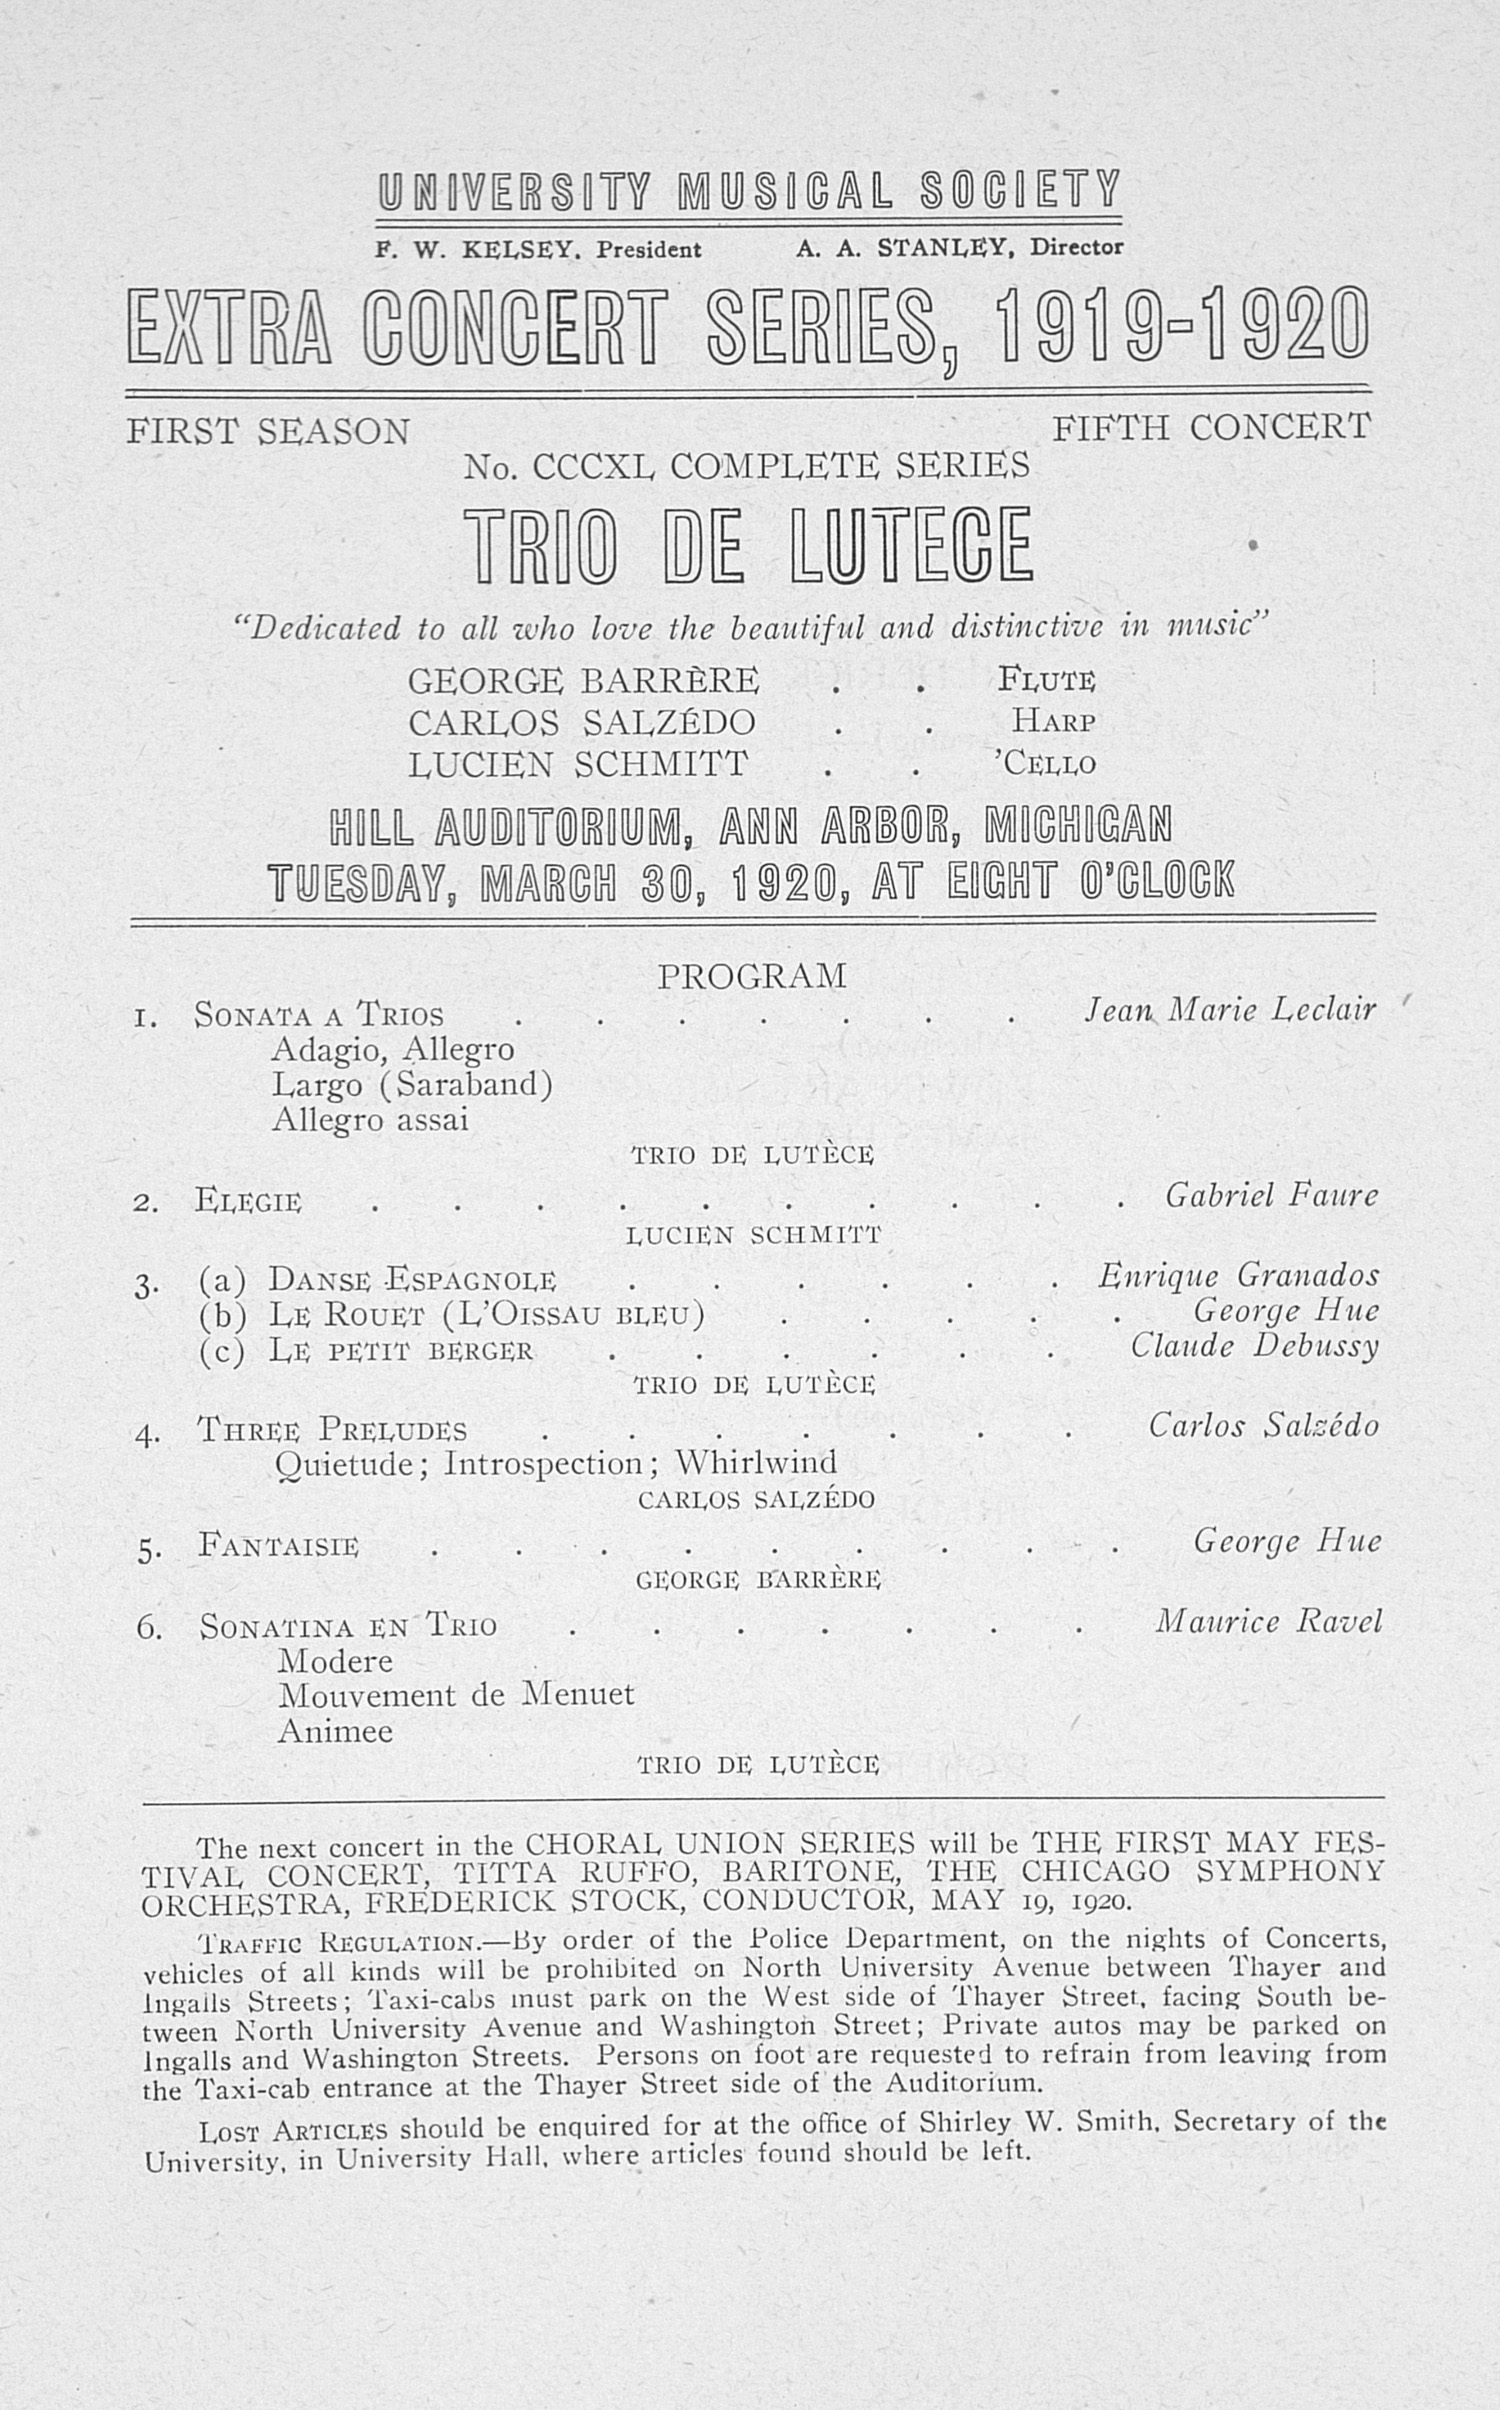 UMS Concert Program, March 30, 1920: Extra Concert Series -- Trio De Lutece image